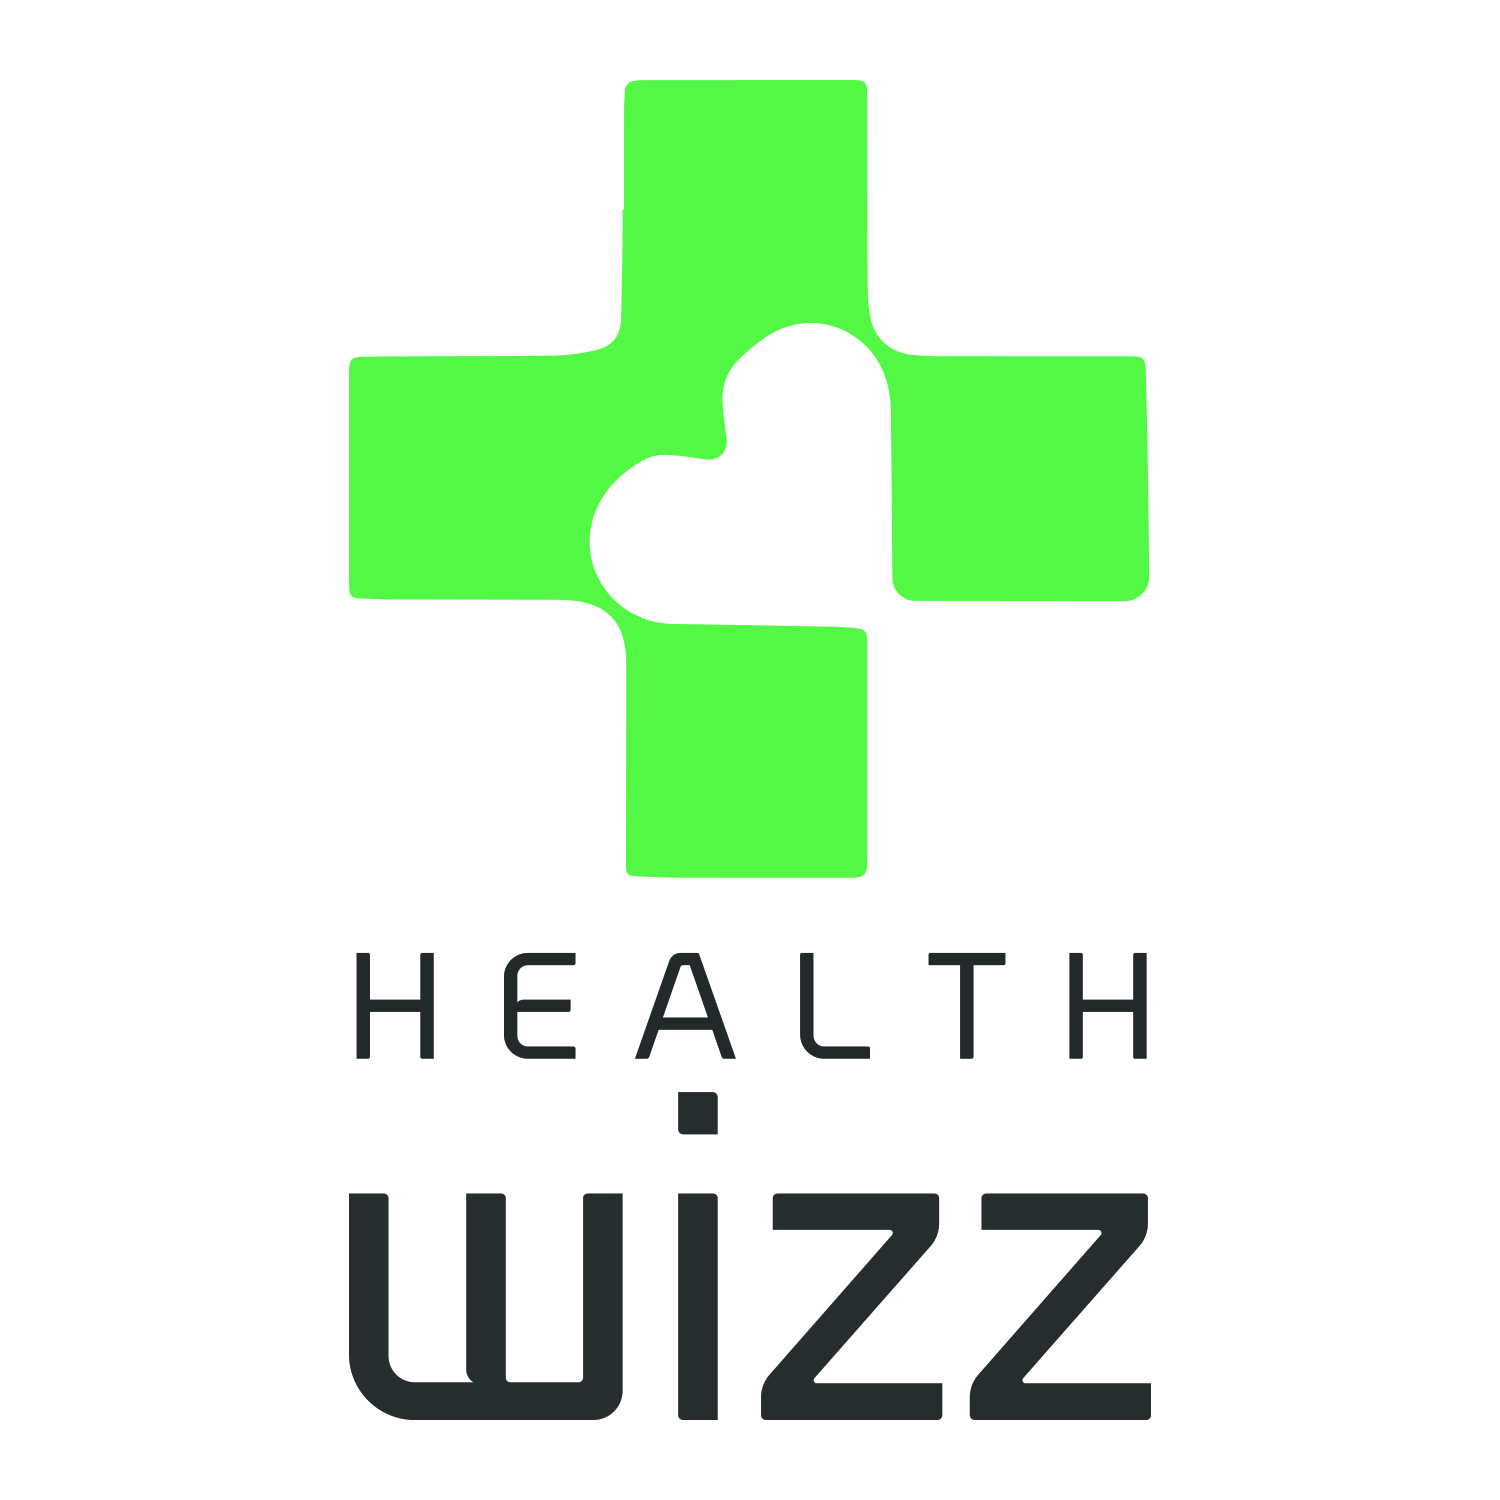 Logotipo de Health Wizz